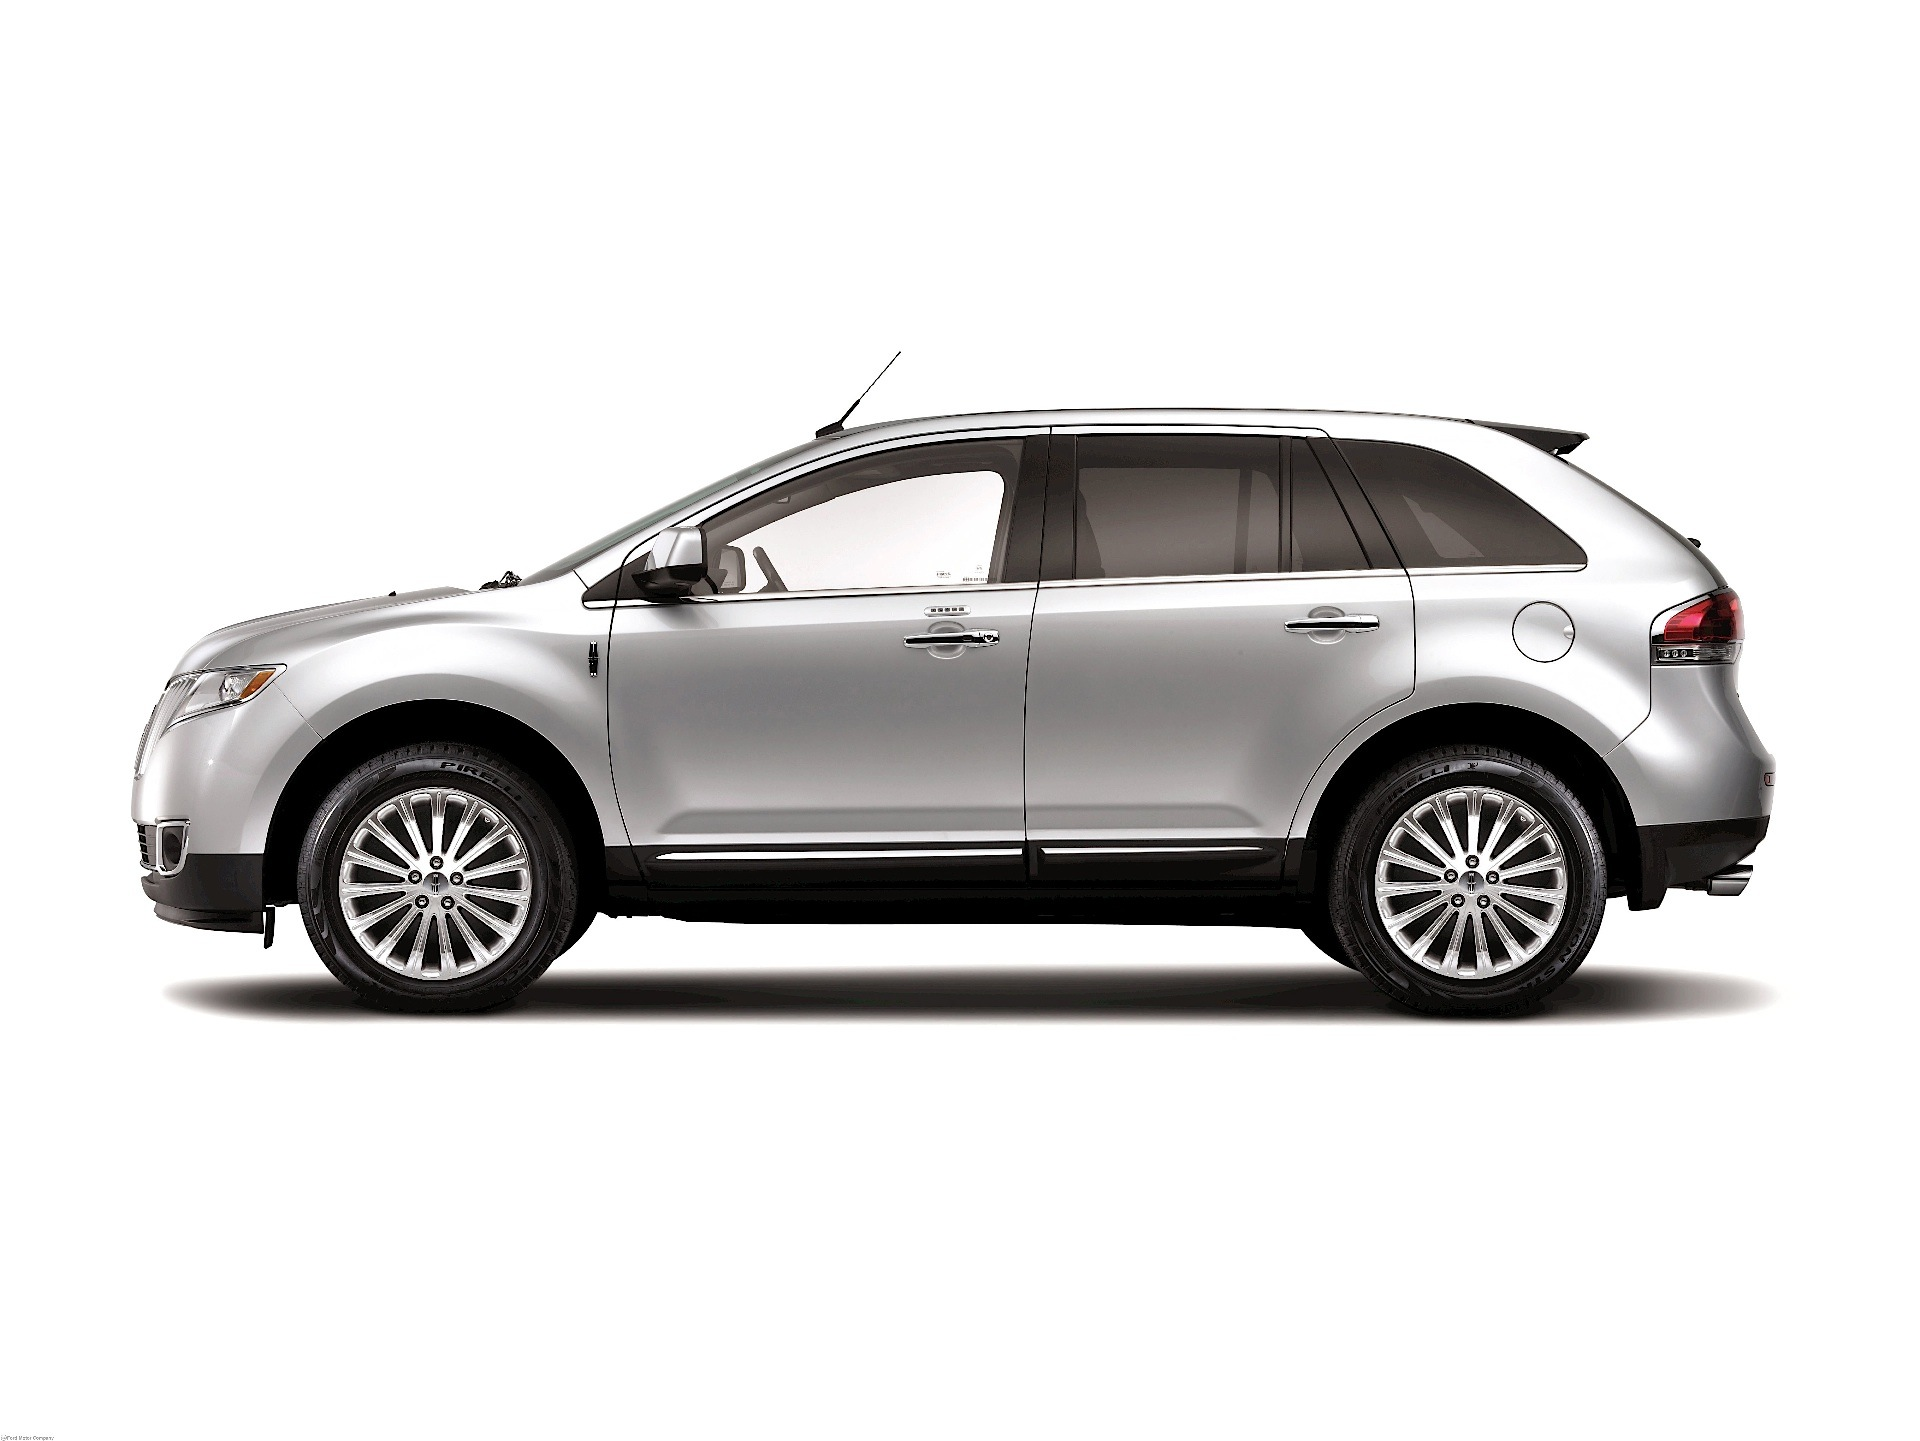 lincoln mkx specs 2011 2012 2013 2014 2015 2016 2017 2018 autoevolution. Black Bedroom Furniture Sets. Home Design Ideas